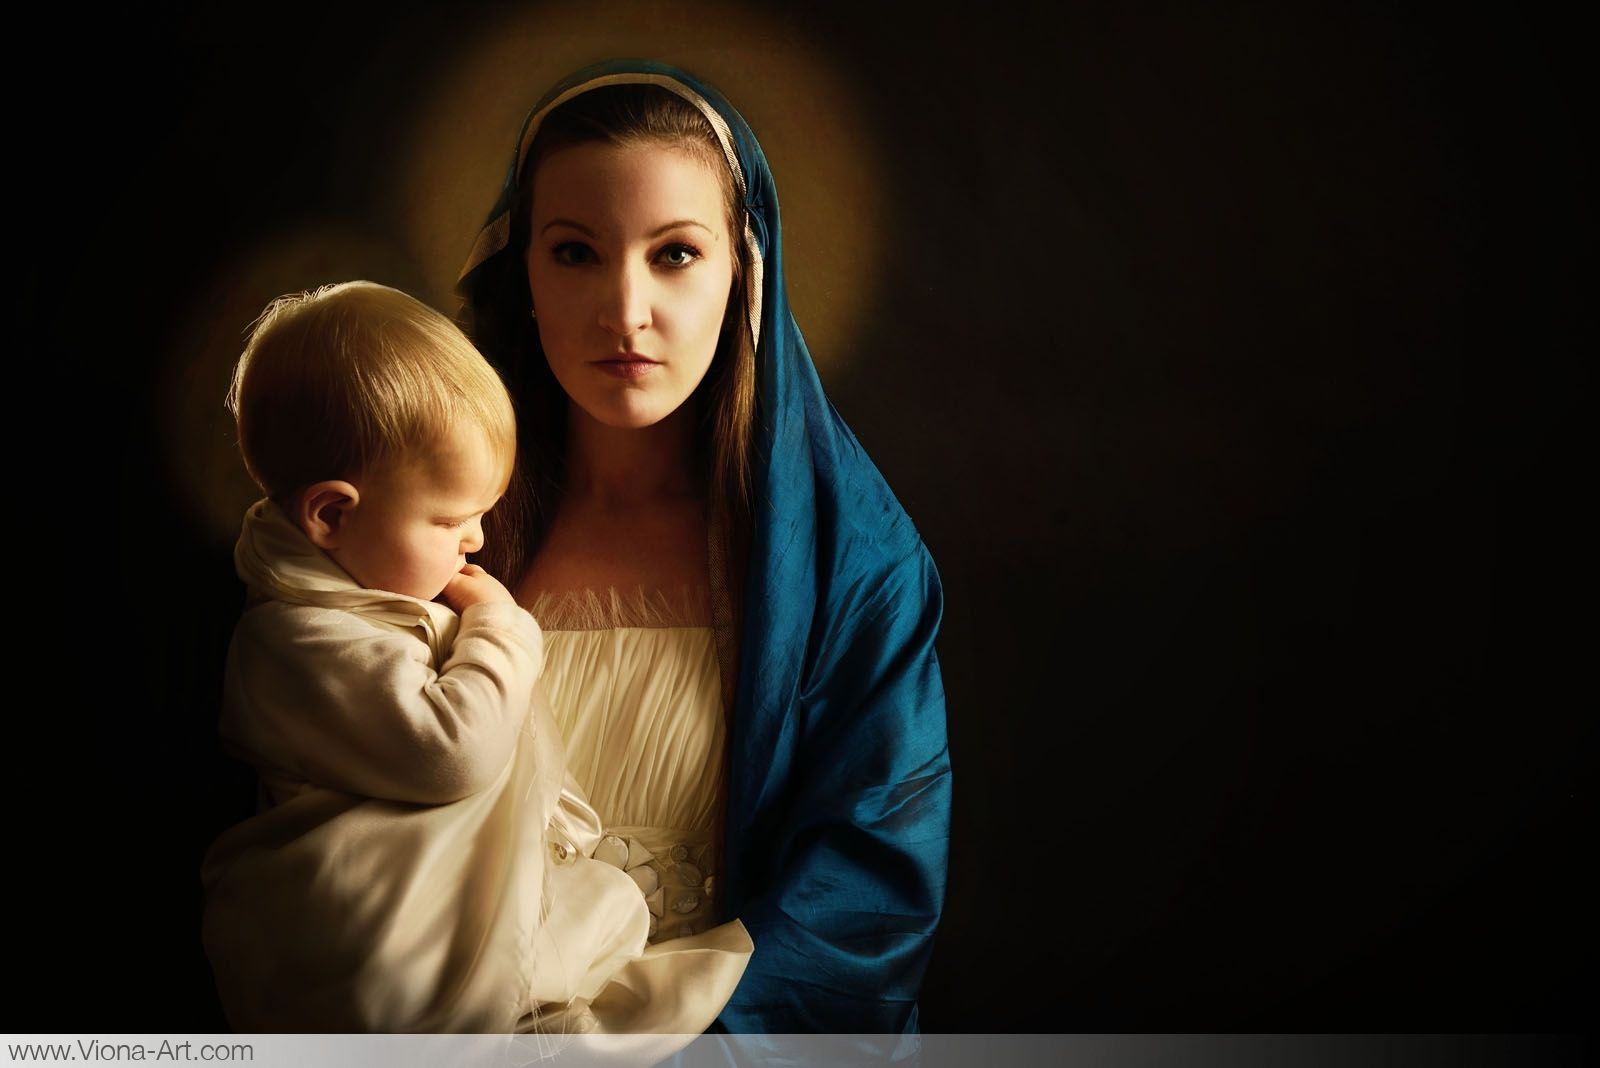 """""""the Child""""  Hail Mary, full of grace. Our Lord is with thee. Blessed art thou among women, and blessed is the fruit of thy womb, Jesus. Holy Mary, Mother of God, pray for us sinners, now and at the hour of our death. Amen."""